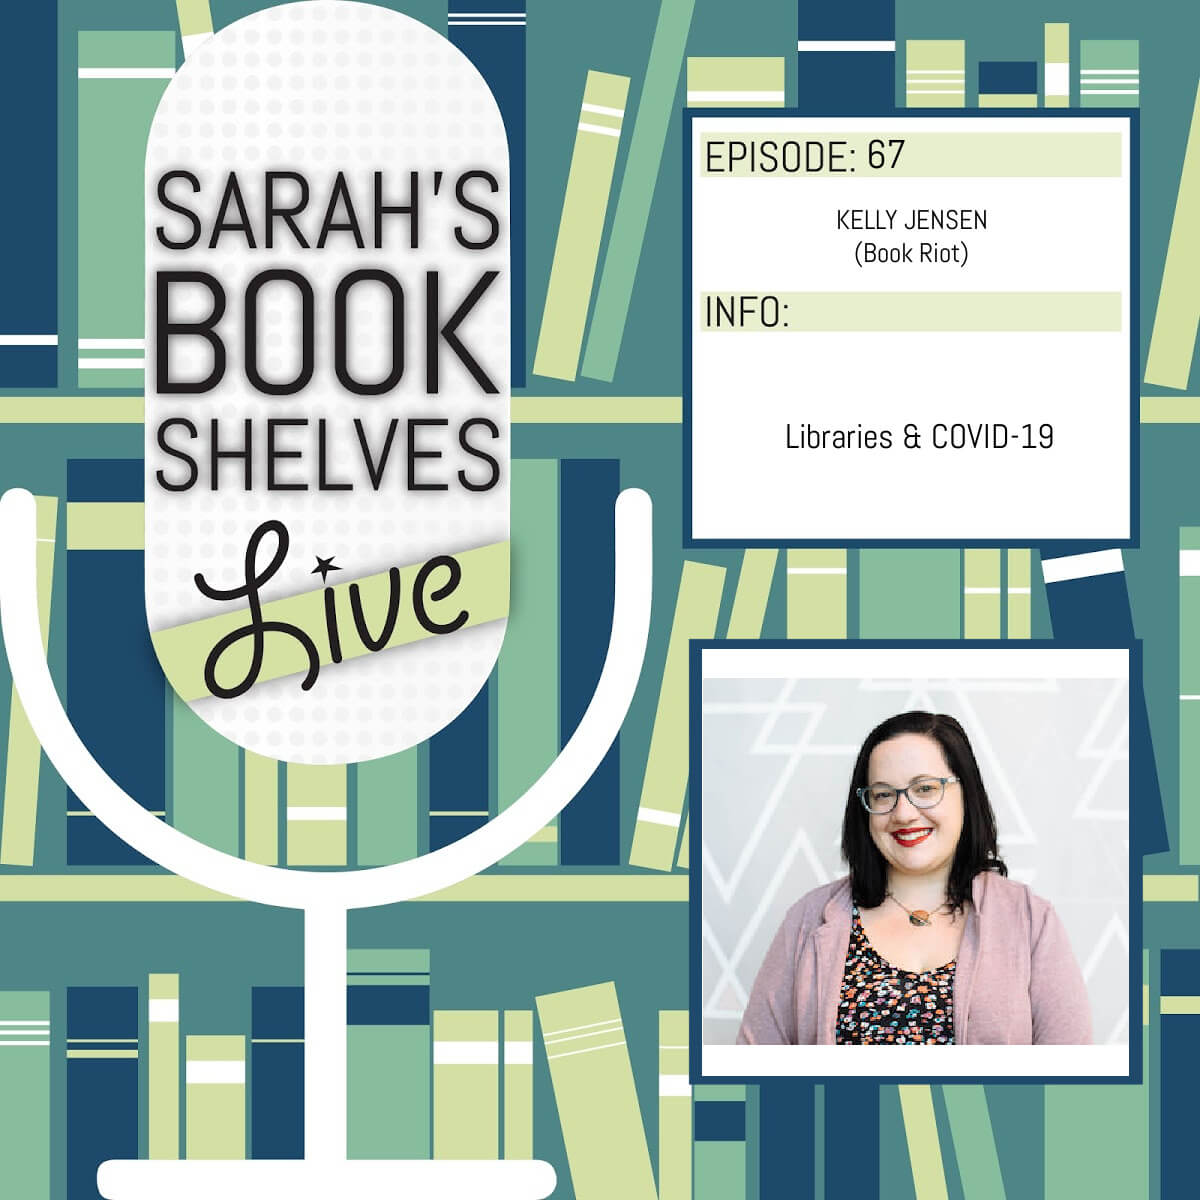 Libraries and COVID-19